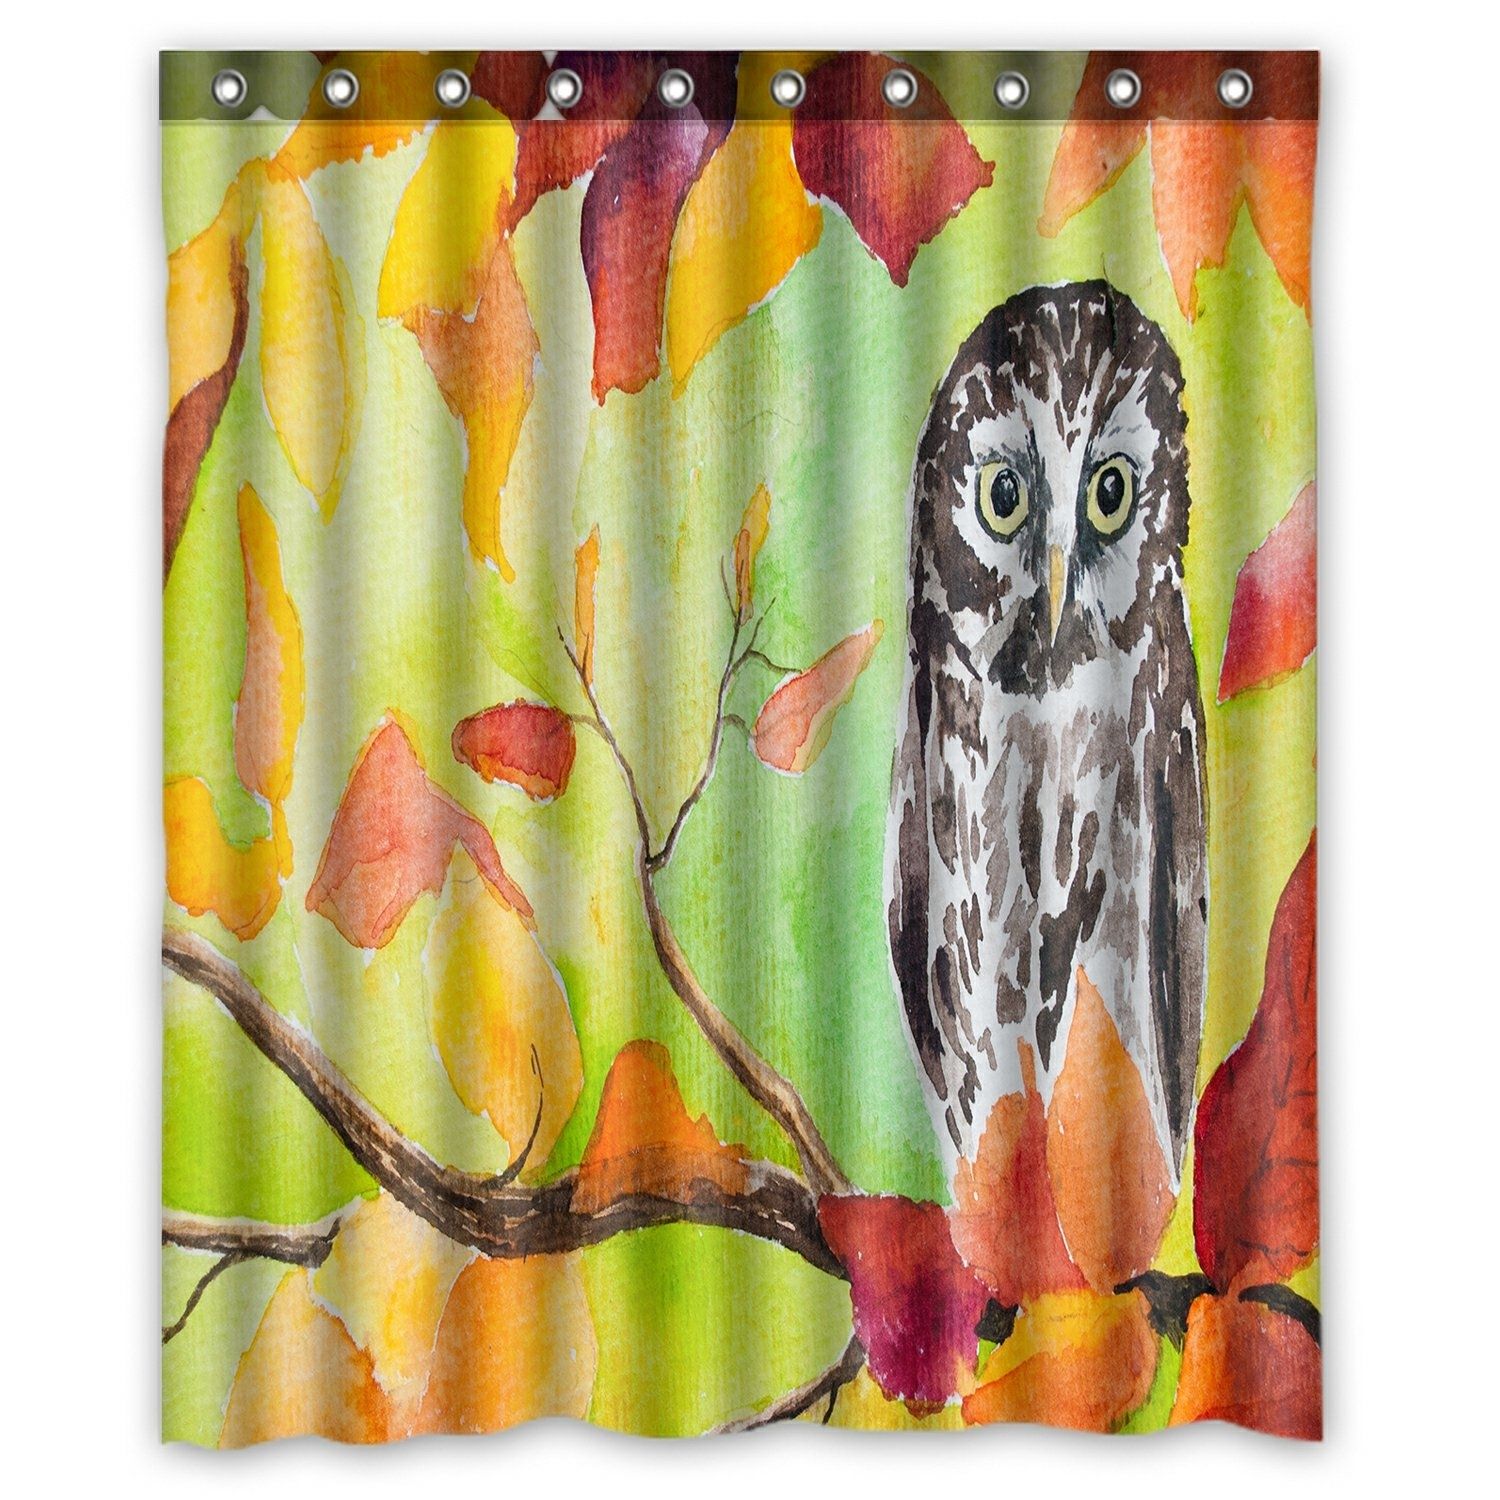 Oil Painting Landscape Shower Curtain, Owl Sitting in the Autumn Forest Tree Shower Curtain 60x72 inch